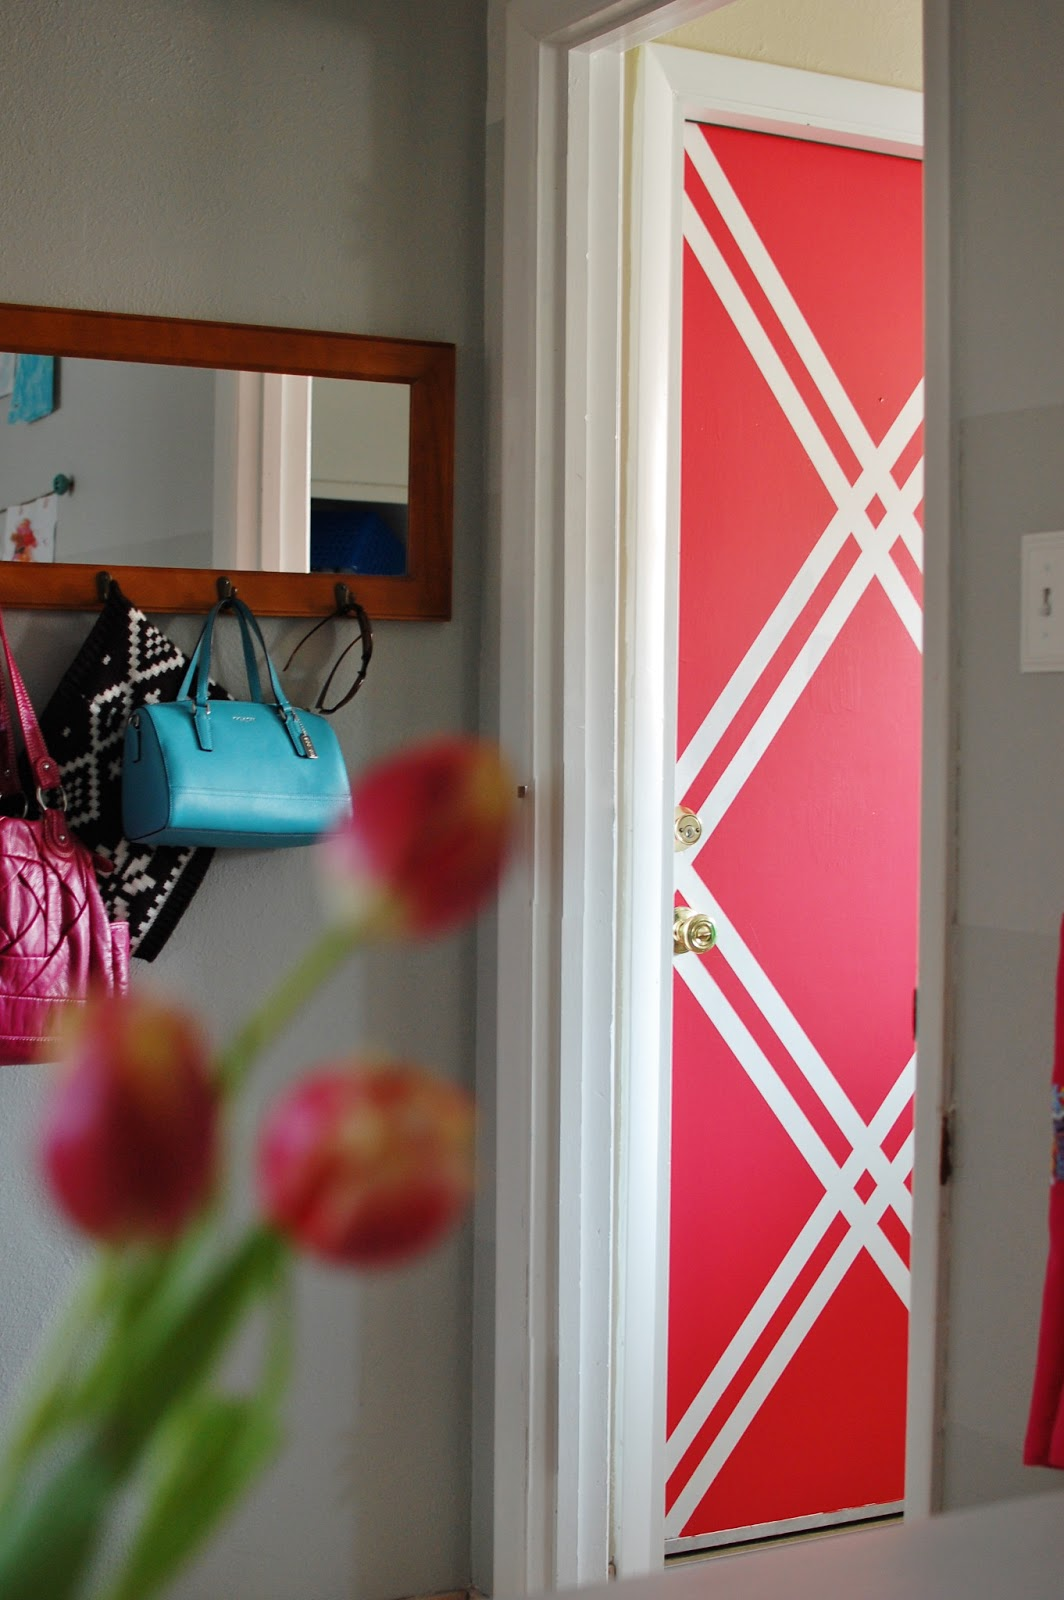 Wall paint patterns using tape - Squares Wall Color Ideas Pinterest